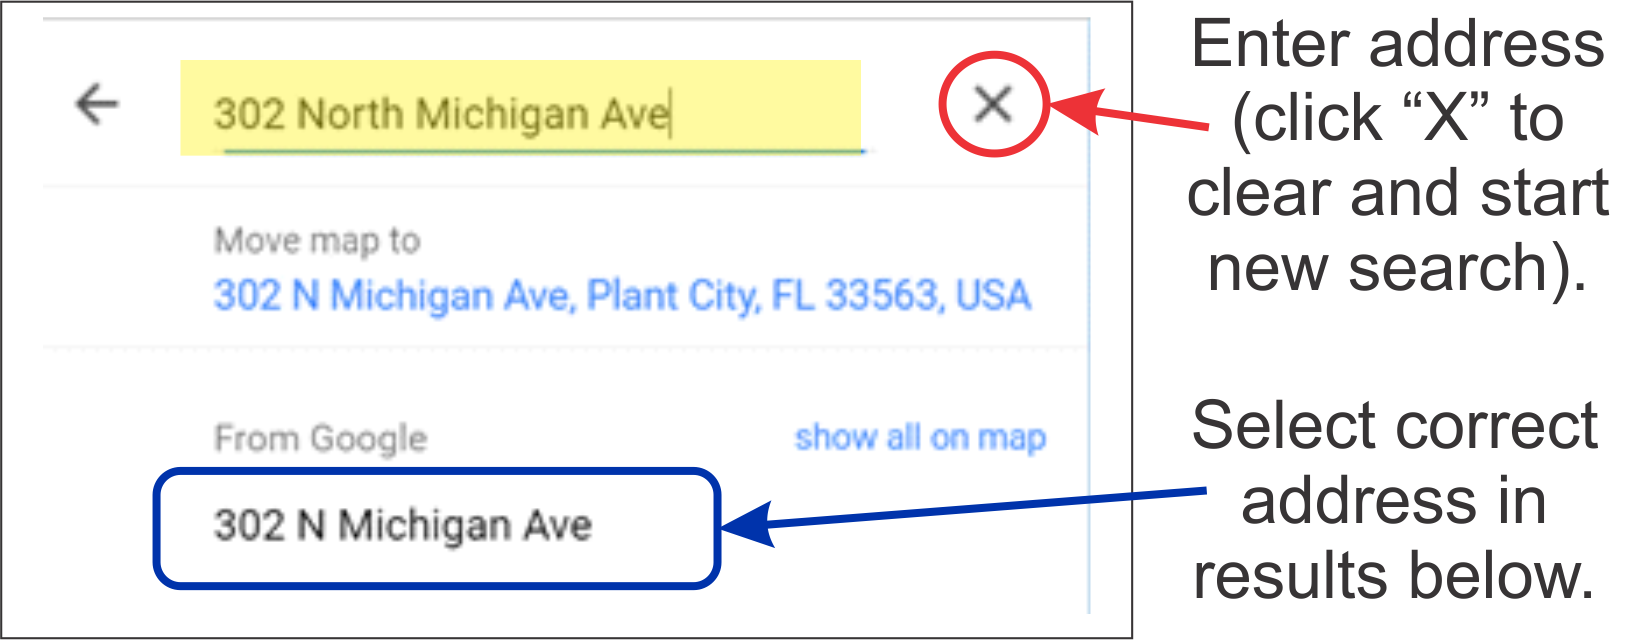 Enter the street address to search for (or click X to clear and start a new search), then select the correct address from the results